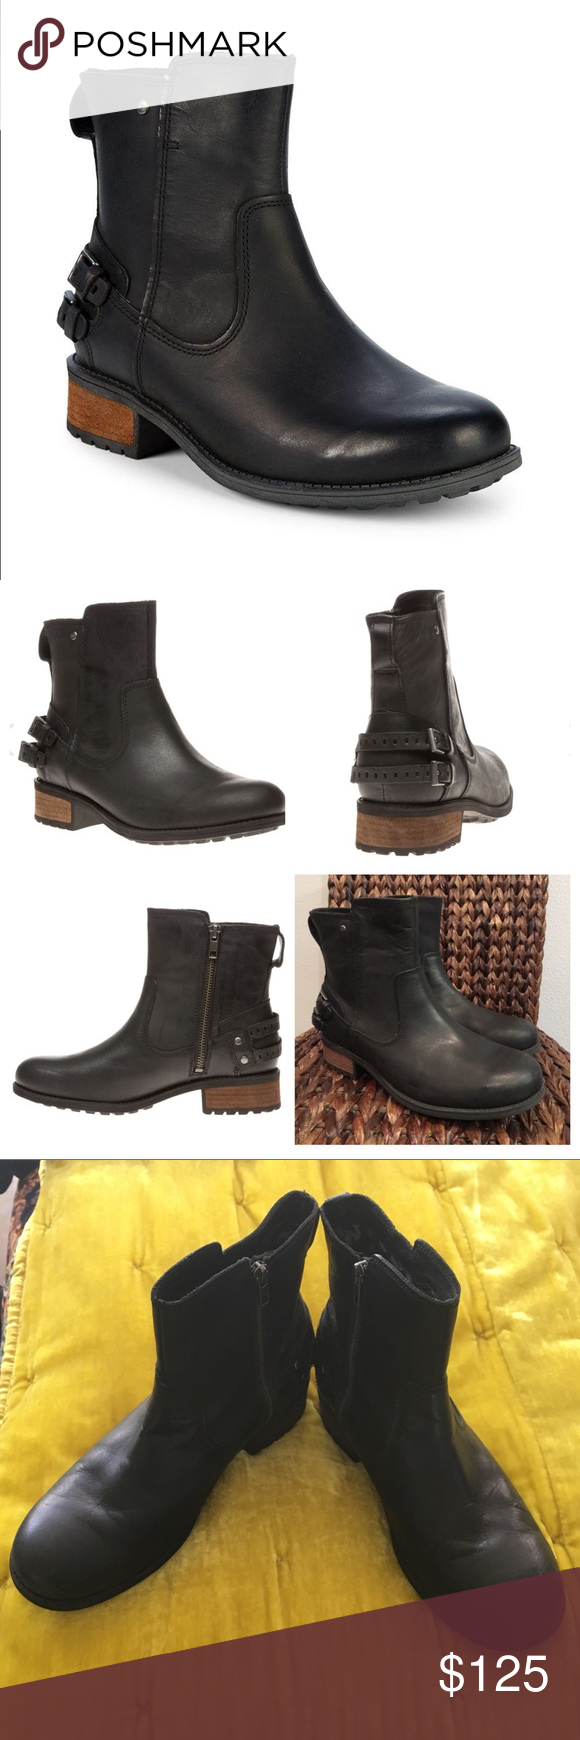 d2b7dd60f4e UGG Shoes | Badass Ugg Orion Boot 11 Moto Combat Ankle Uggs | Color ...